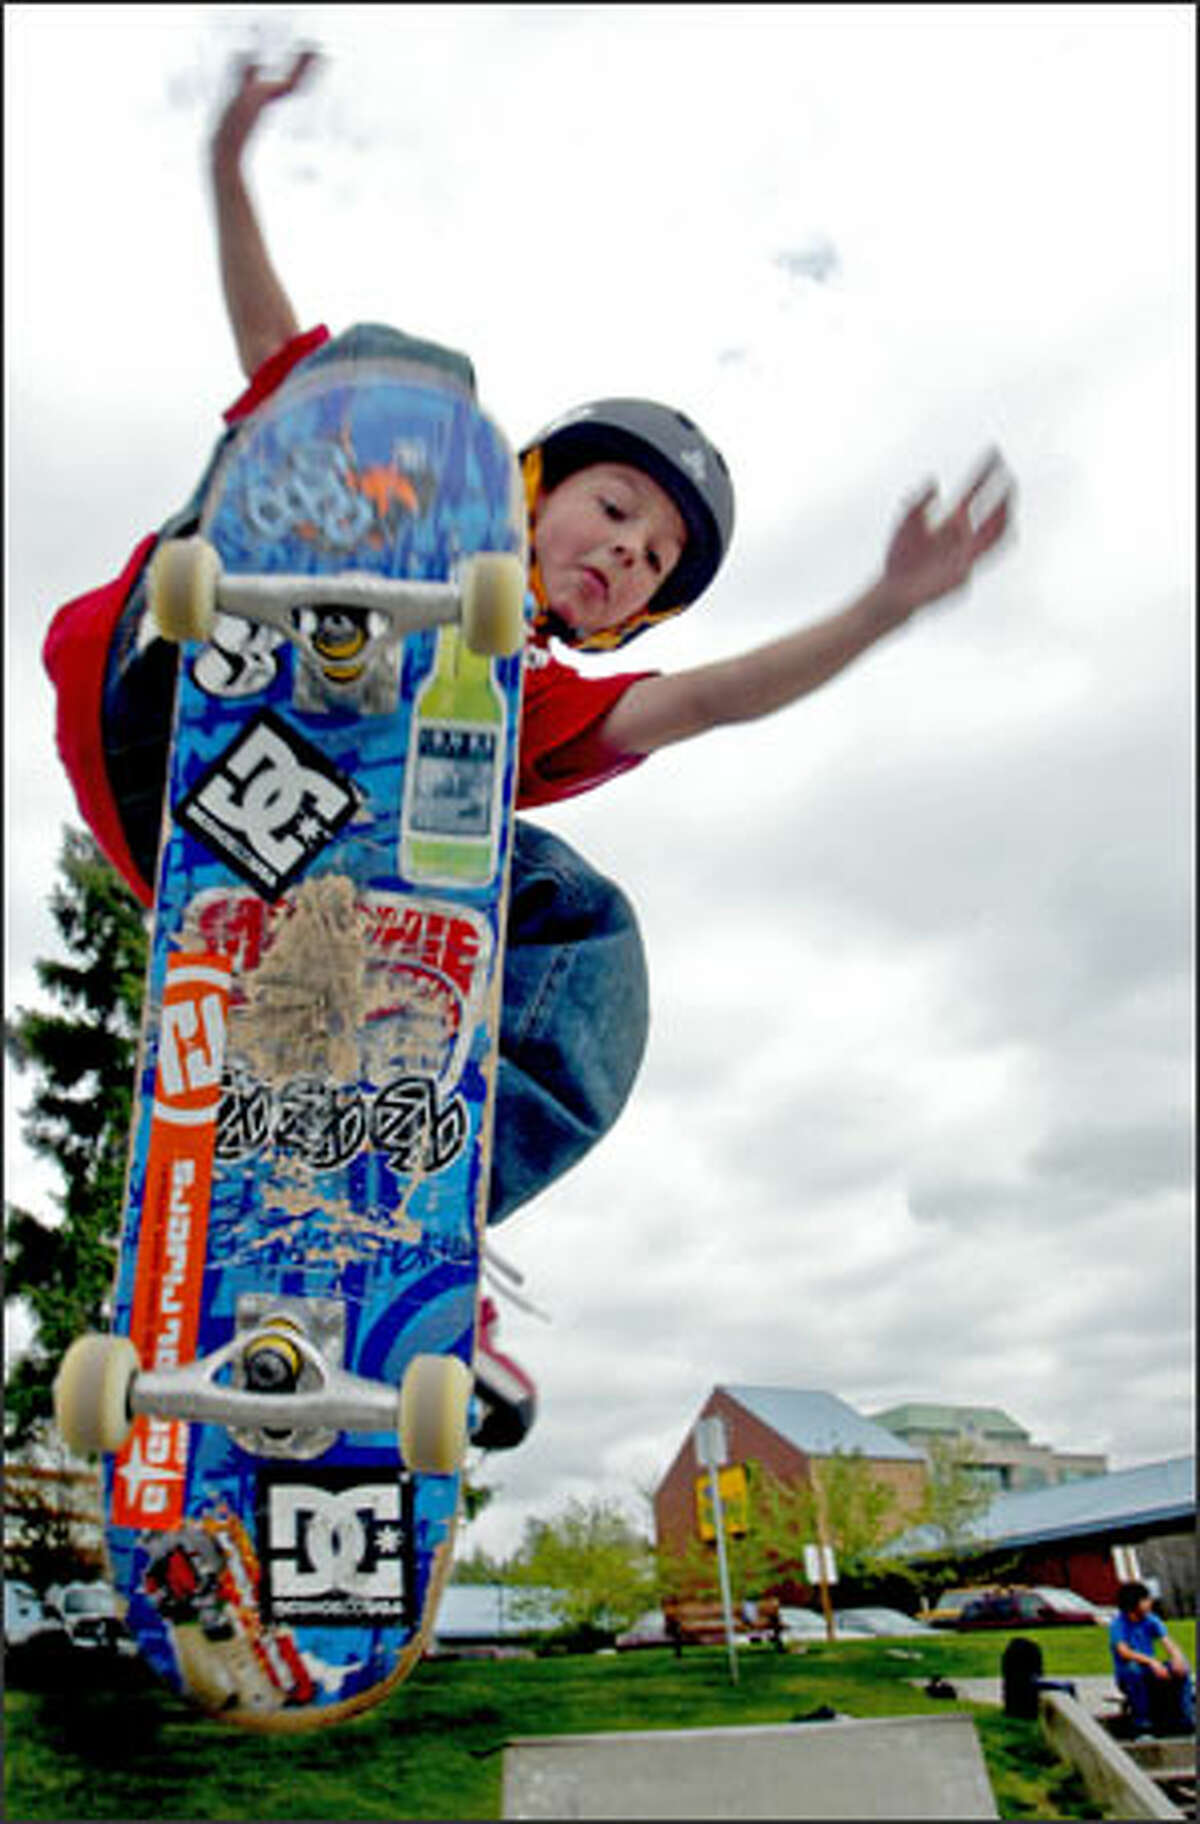 Mitchie Brusco, 8, practices his moves at the skateboard park in Kirkland. The first-grader, who's been skateboarding since he was 3, already has racked up sponsorships and media appearances. He says he doesn't know what drew him to skateboarding.